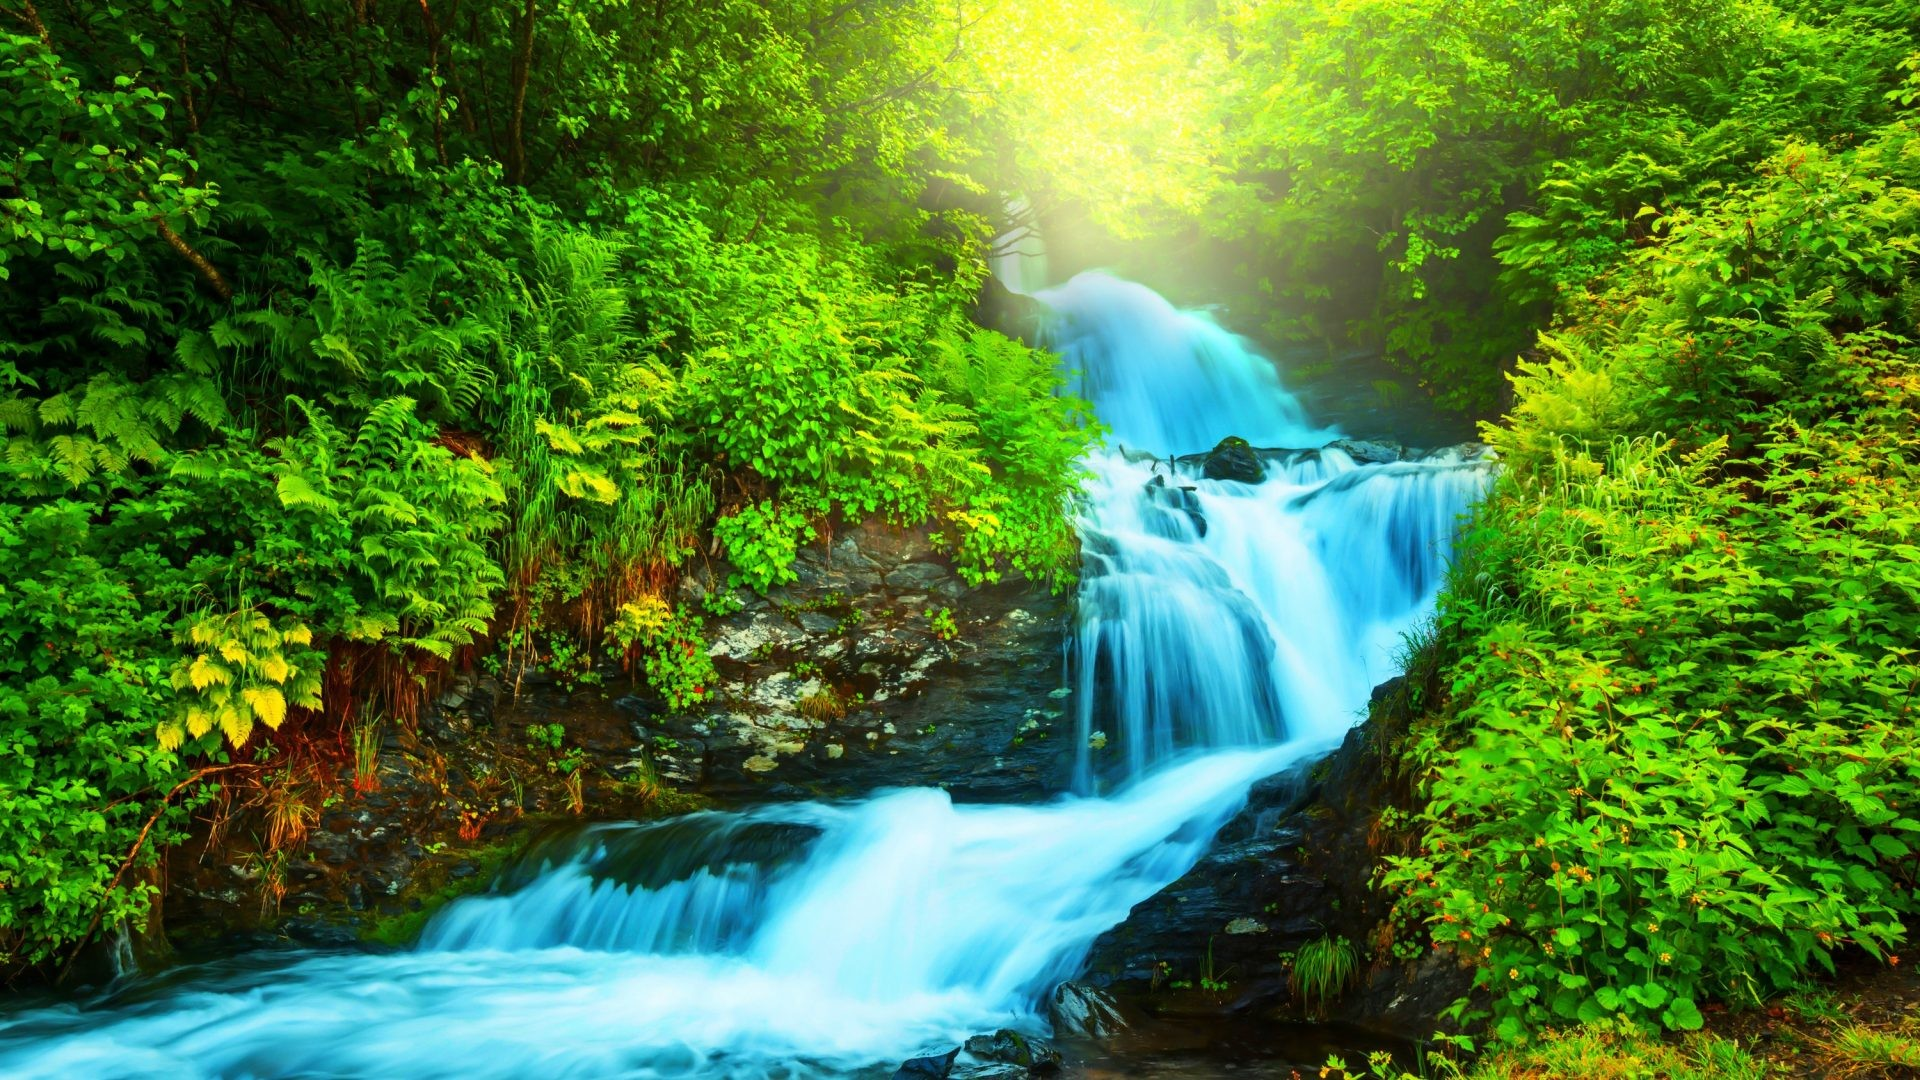 Wallpaper Scenery Waterfall (53+ Images